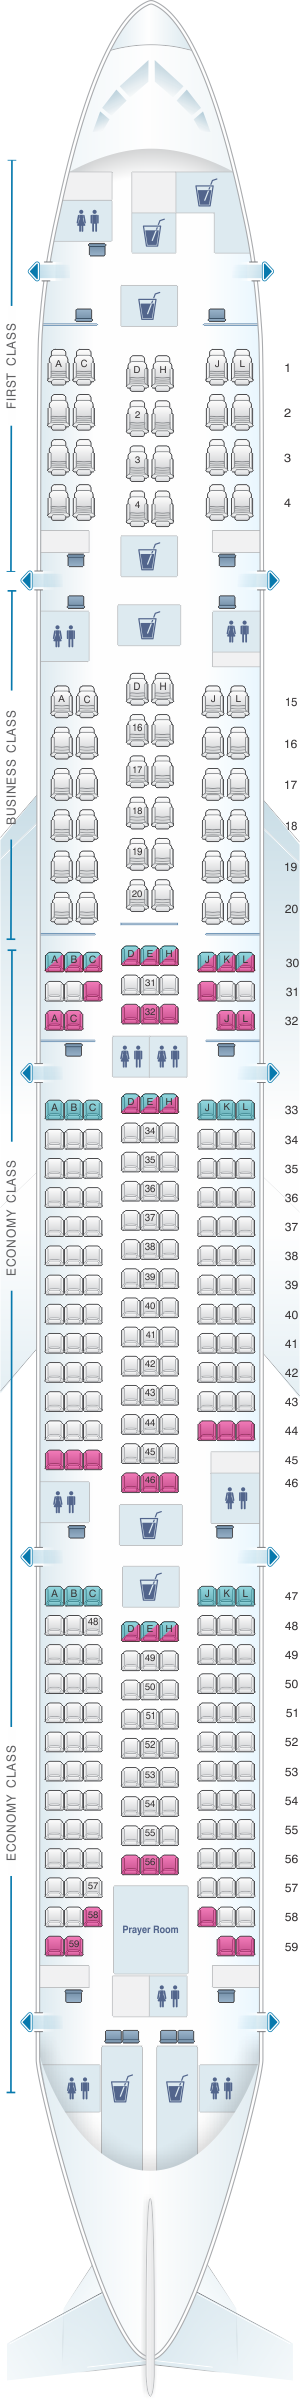 How do you find a seating chart for the Boeing 77W?